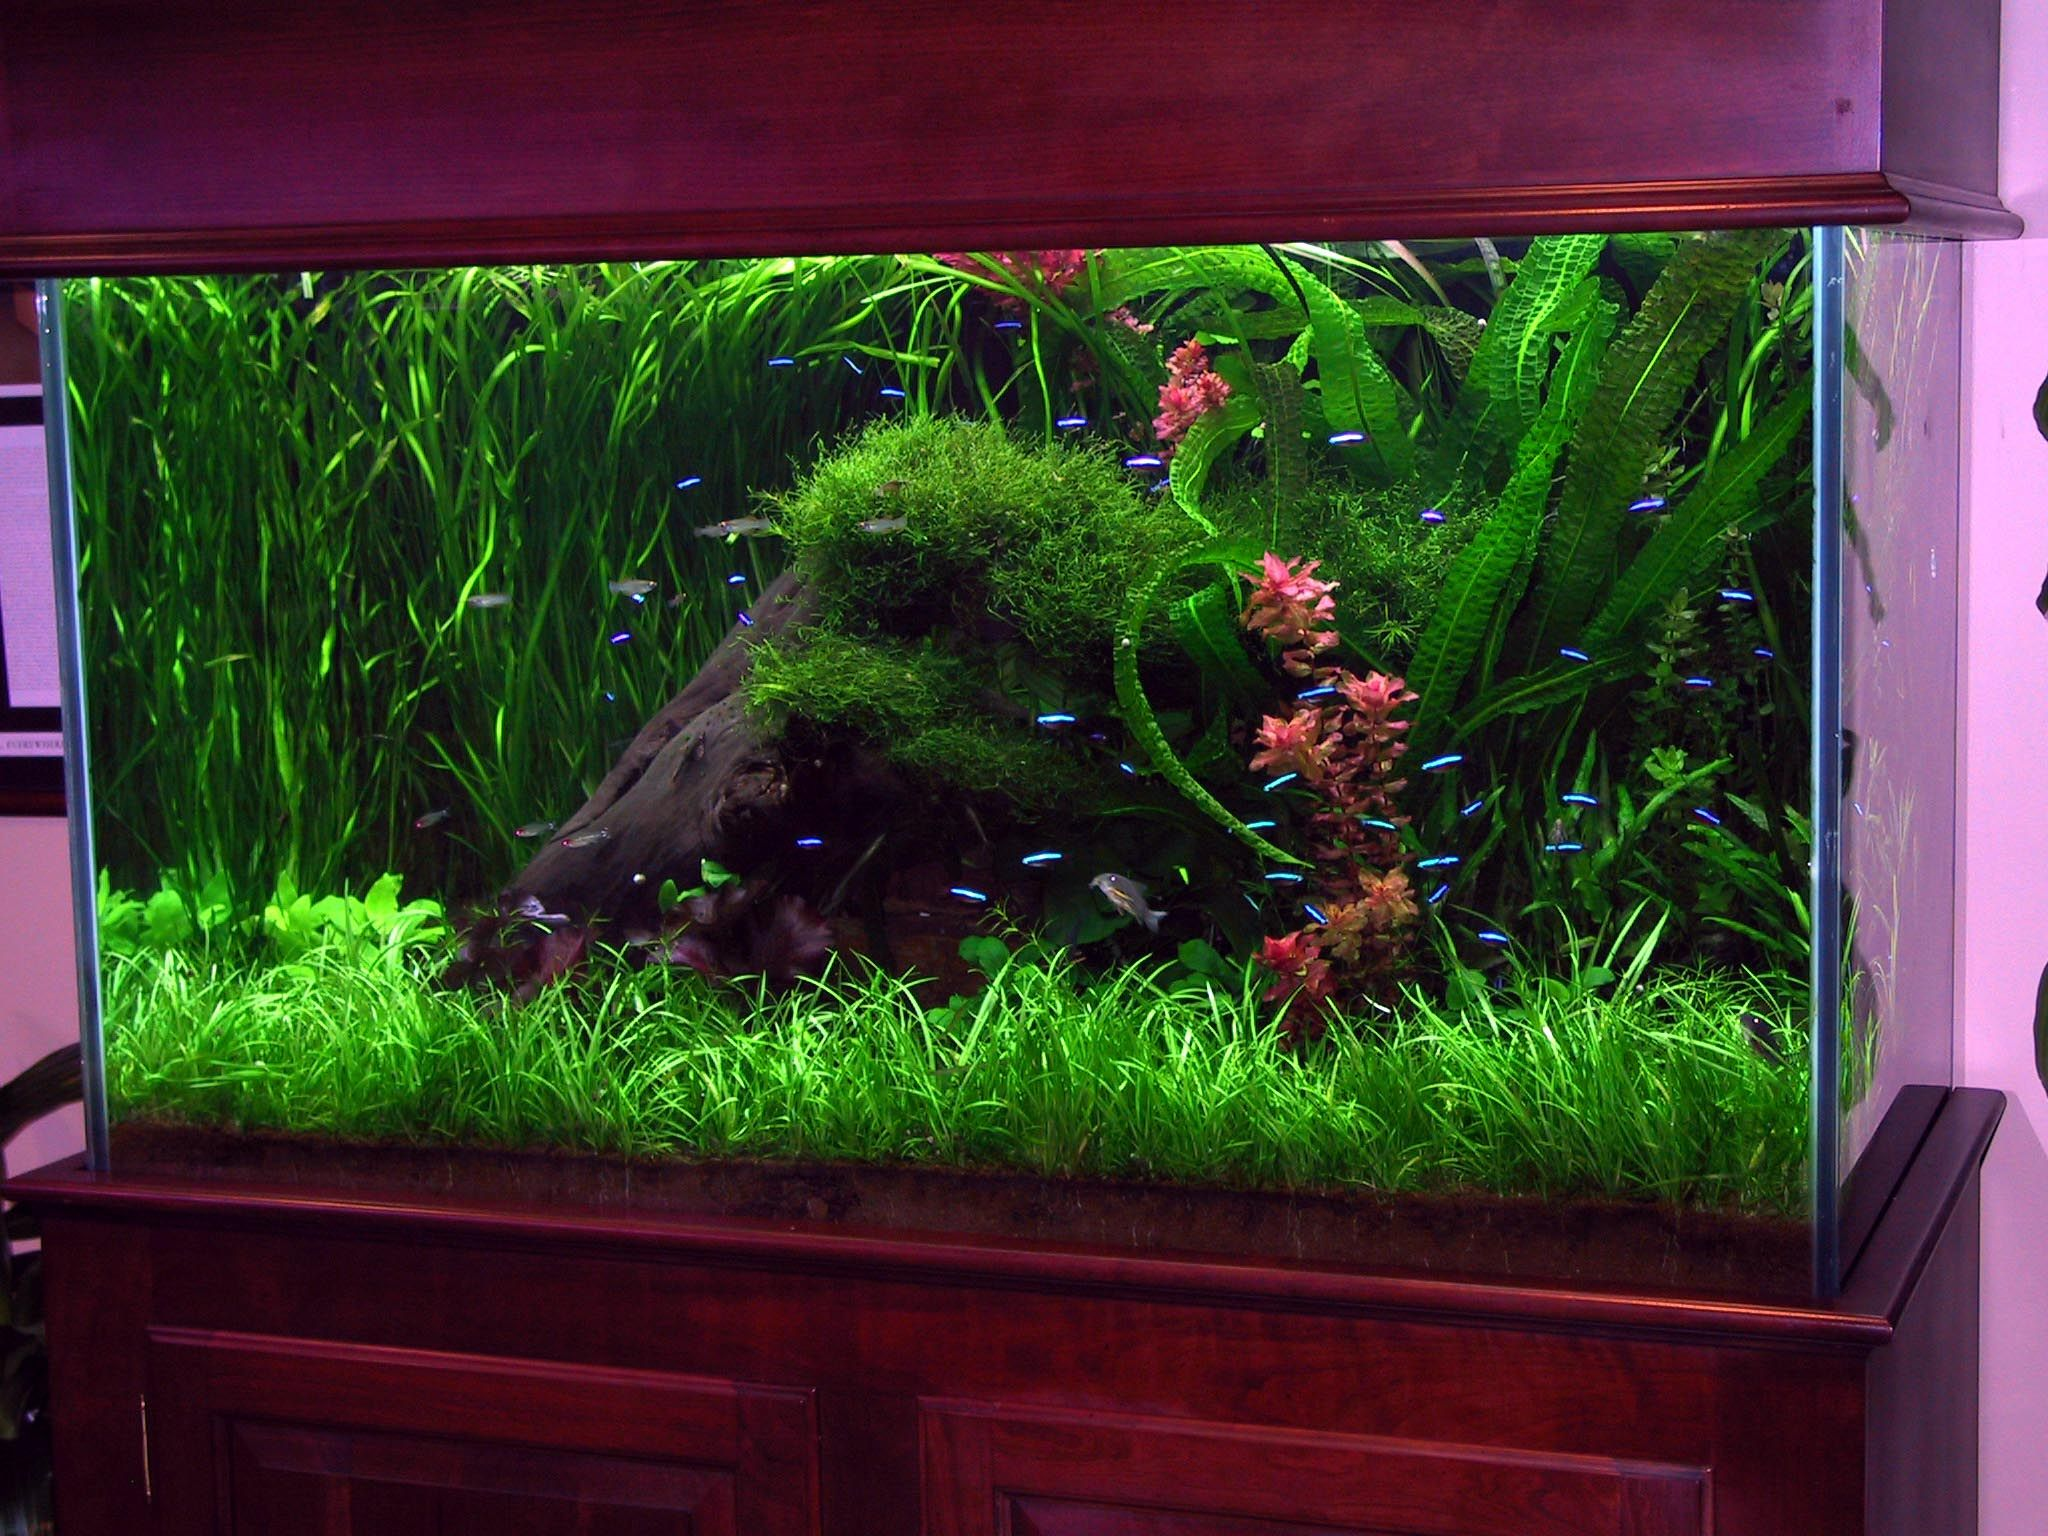 Used aquarium fish tank for sale - Interior Designs Ideas Corner Fish Tanks Aquariums Acrylic Tank Design Filter Gravel Custom Large Start Background